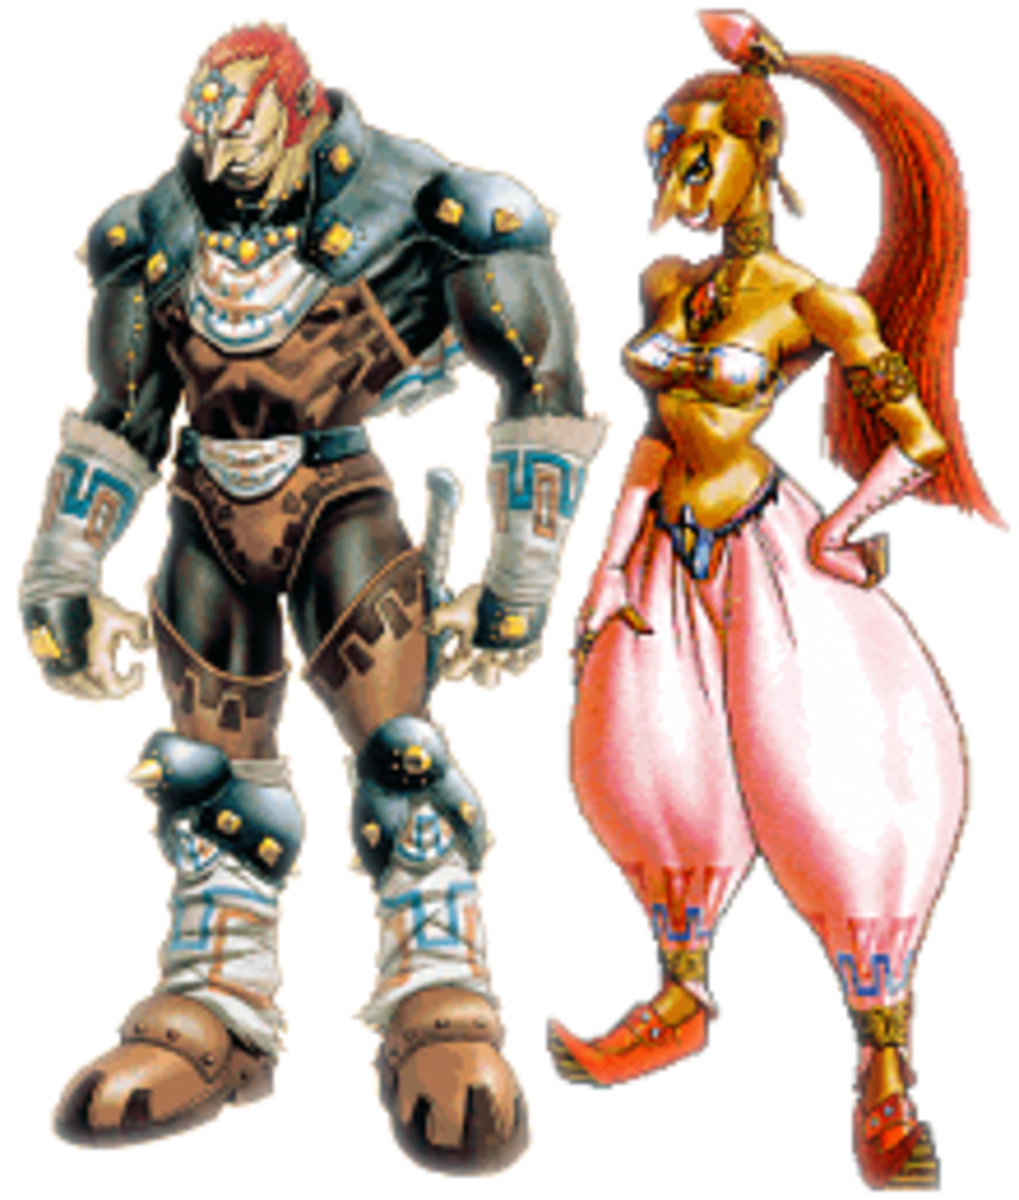 Ganondorf and Nabooru are the two most famous Gerudo.